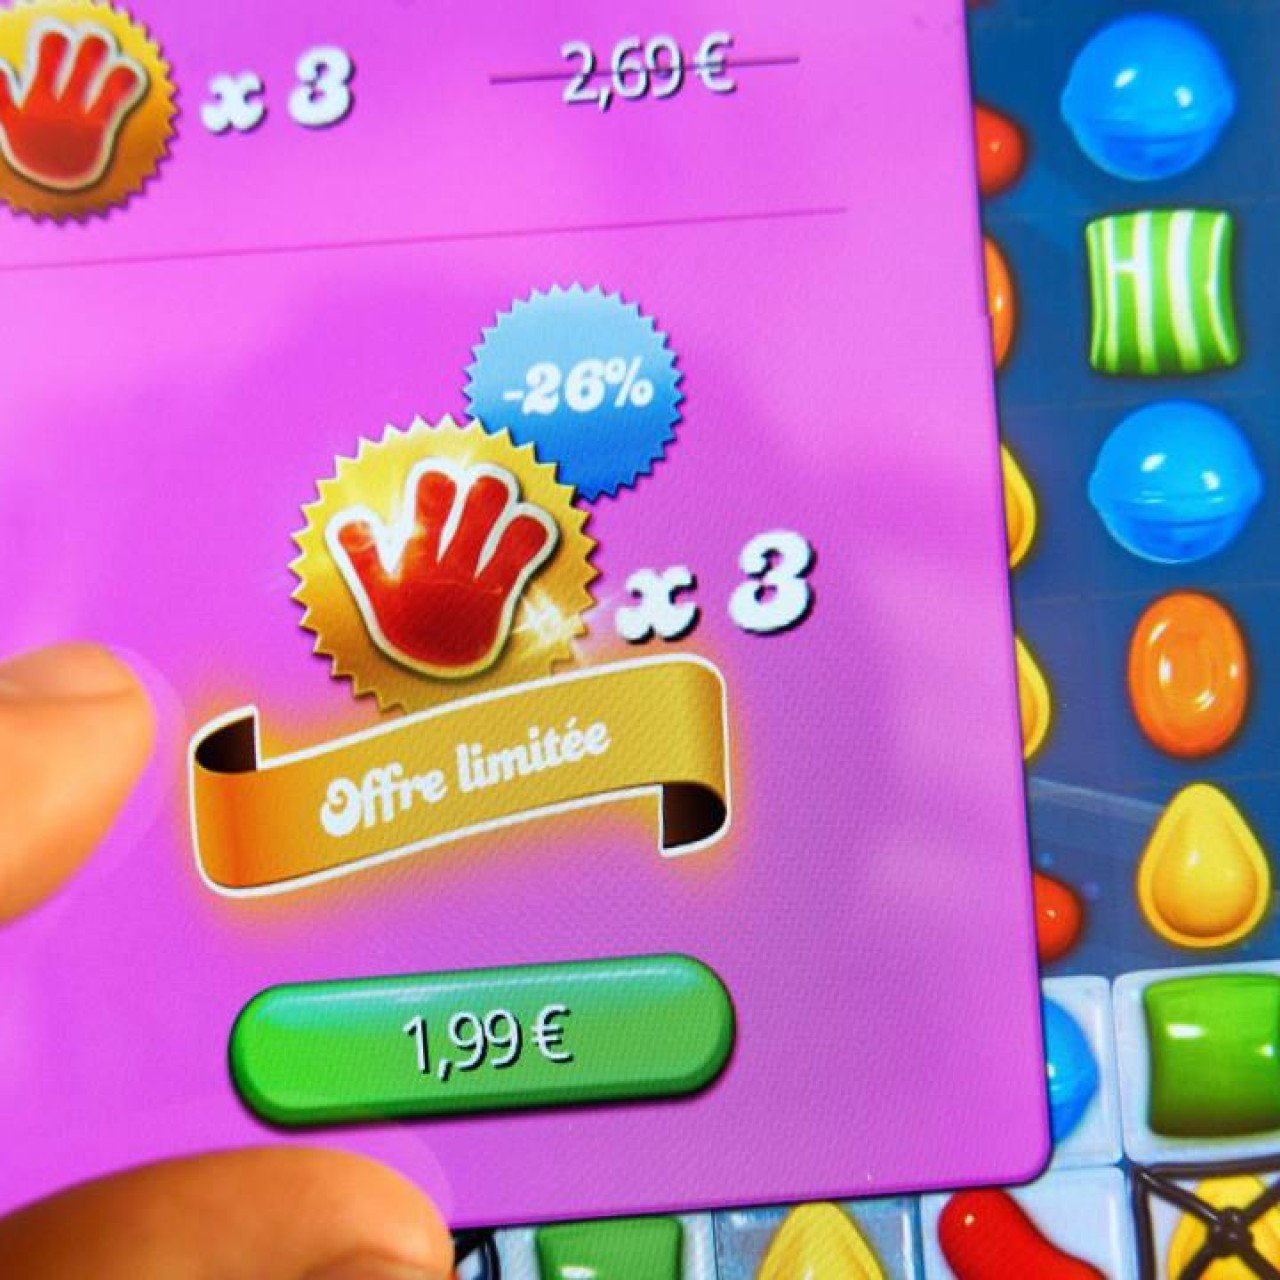 Activision Blizzard to buy 'Candy Crush' maker King Digital